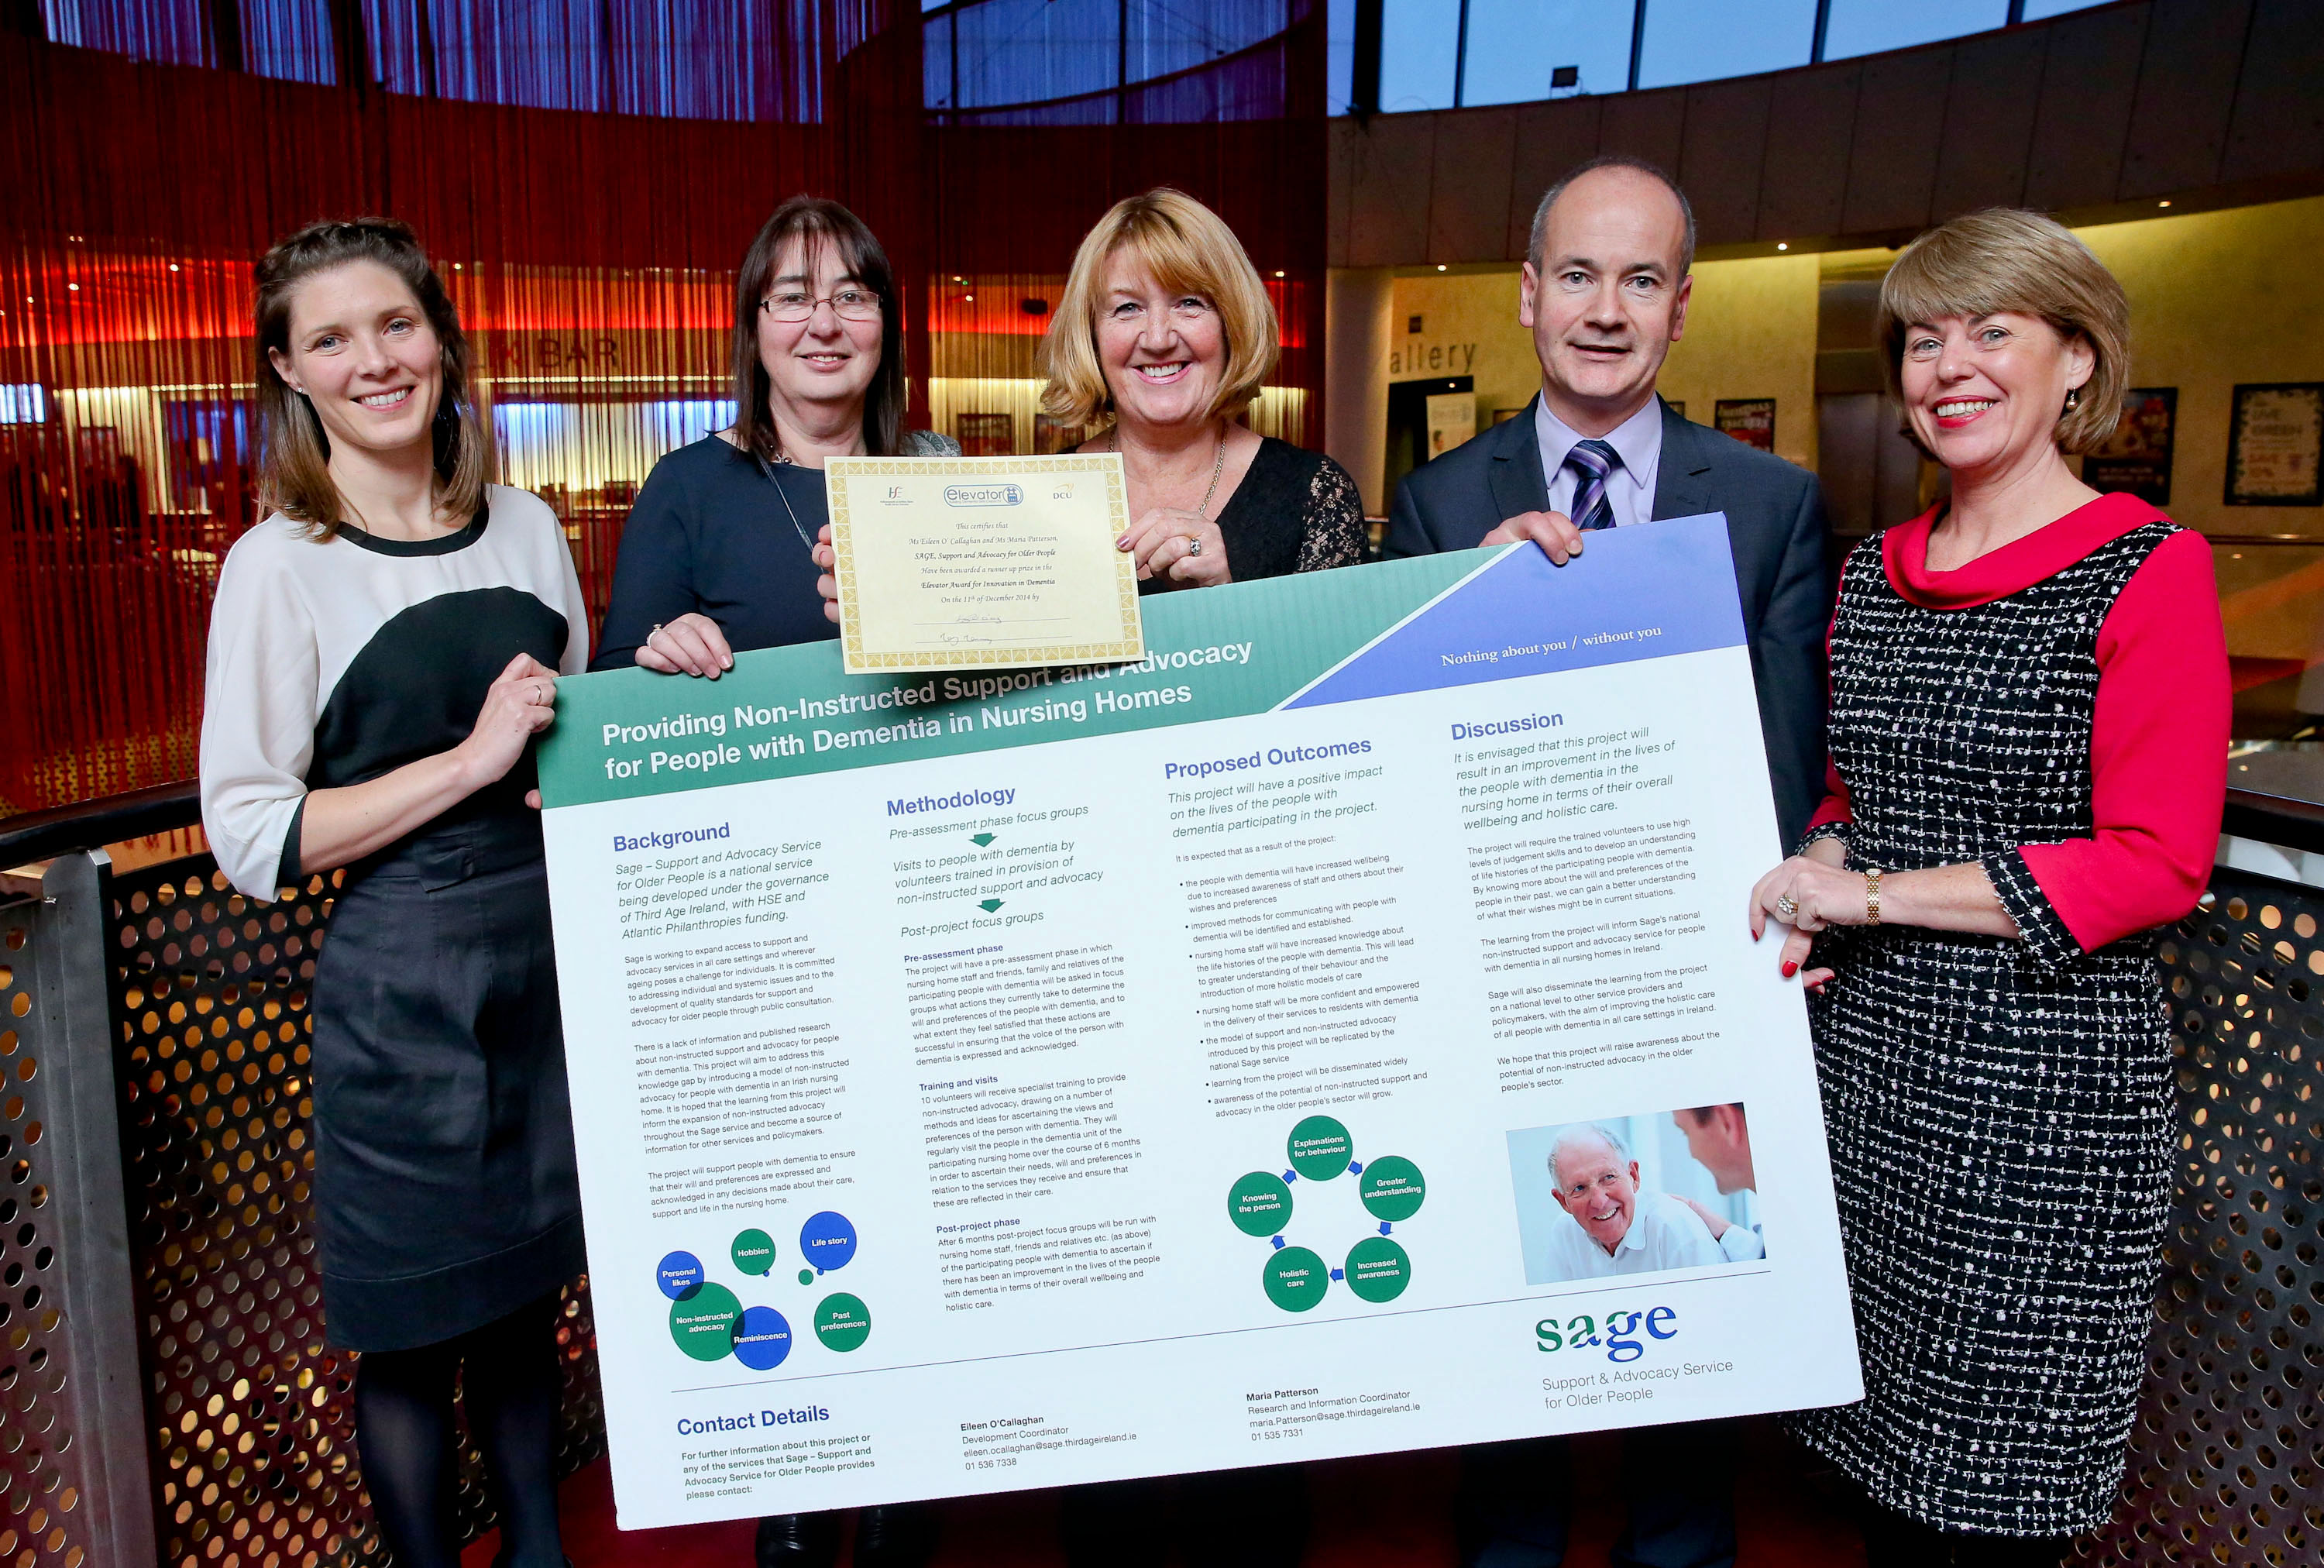 Runners up SAGE, Support and Advocacy for Older People L-R Dr Kate Irving, DCU,  Marion​ Connolly, Anne Harris, SAGE, John Linehan, HSE, Mary Manning, HSE